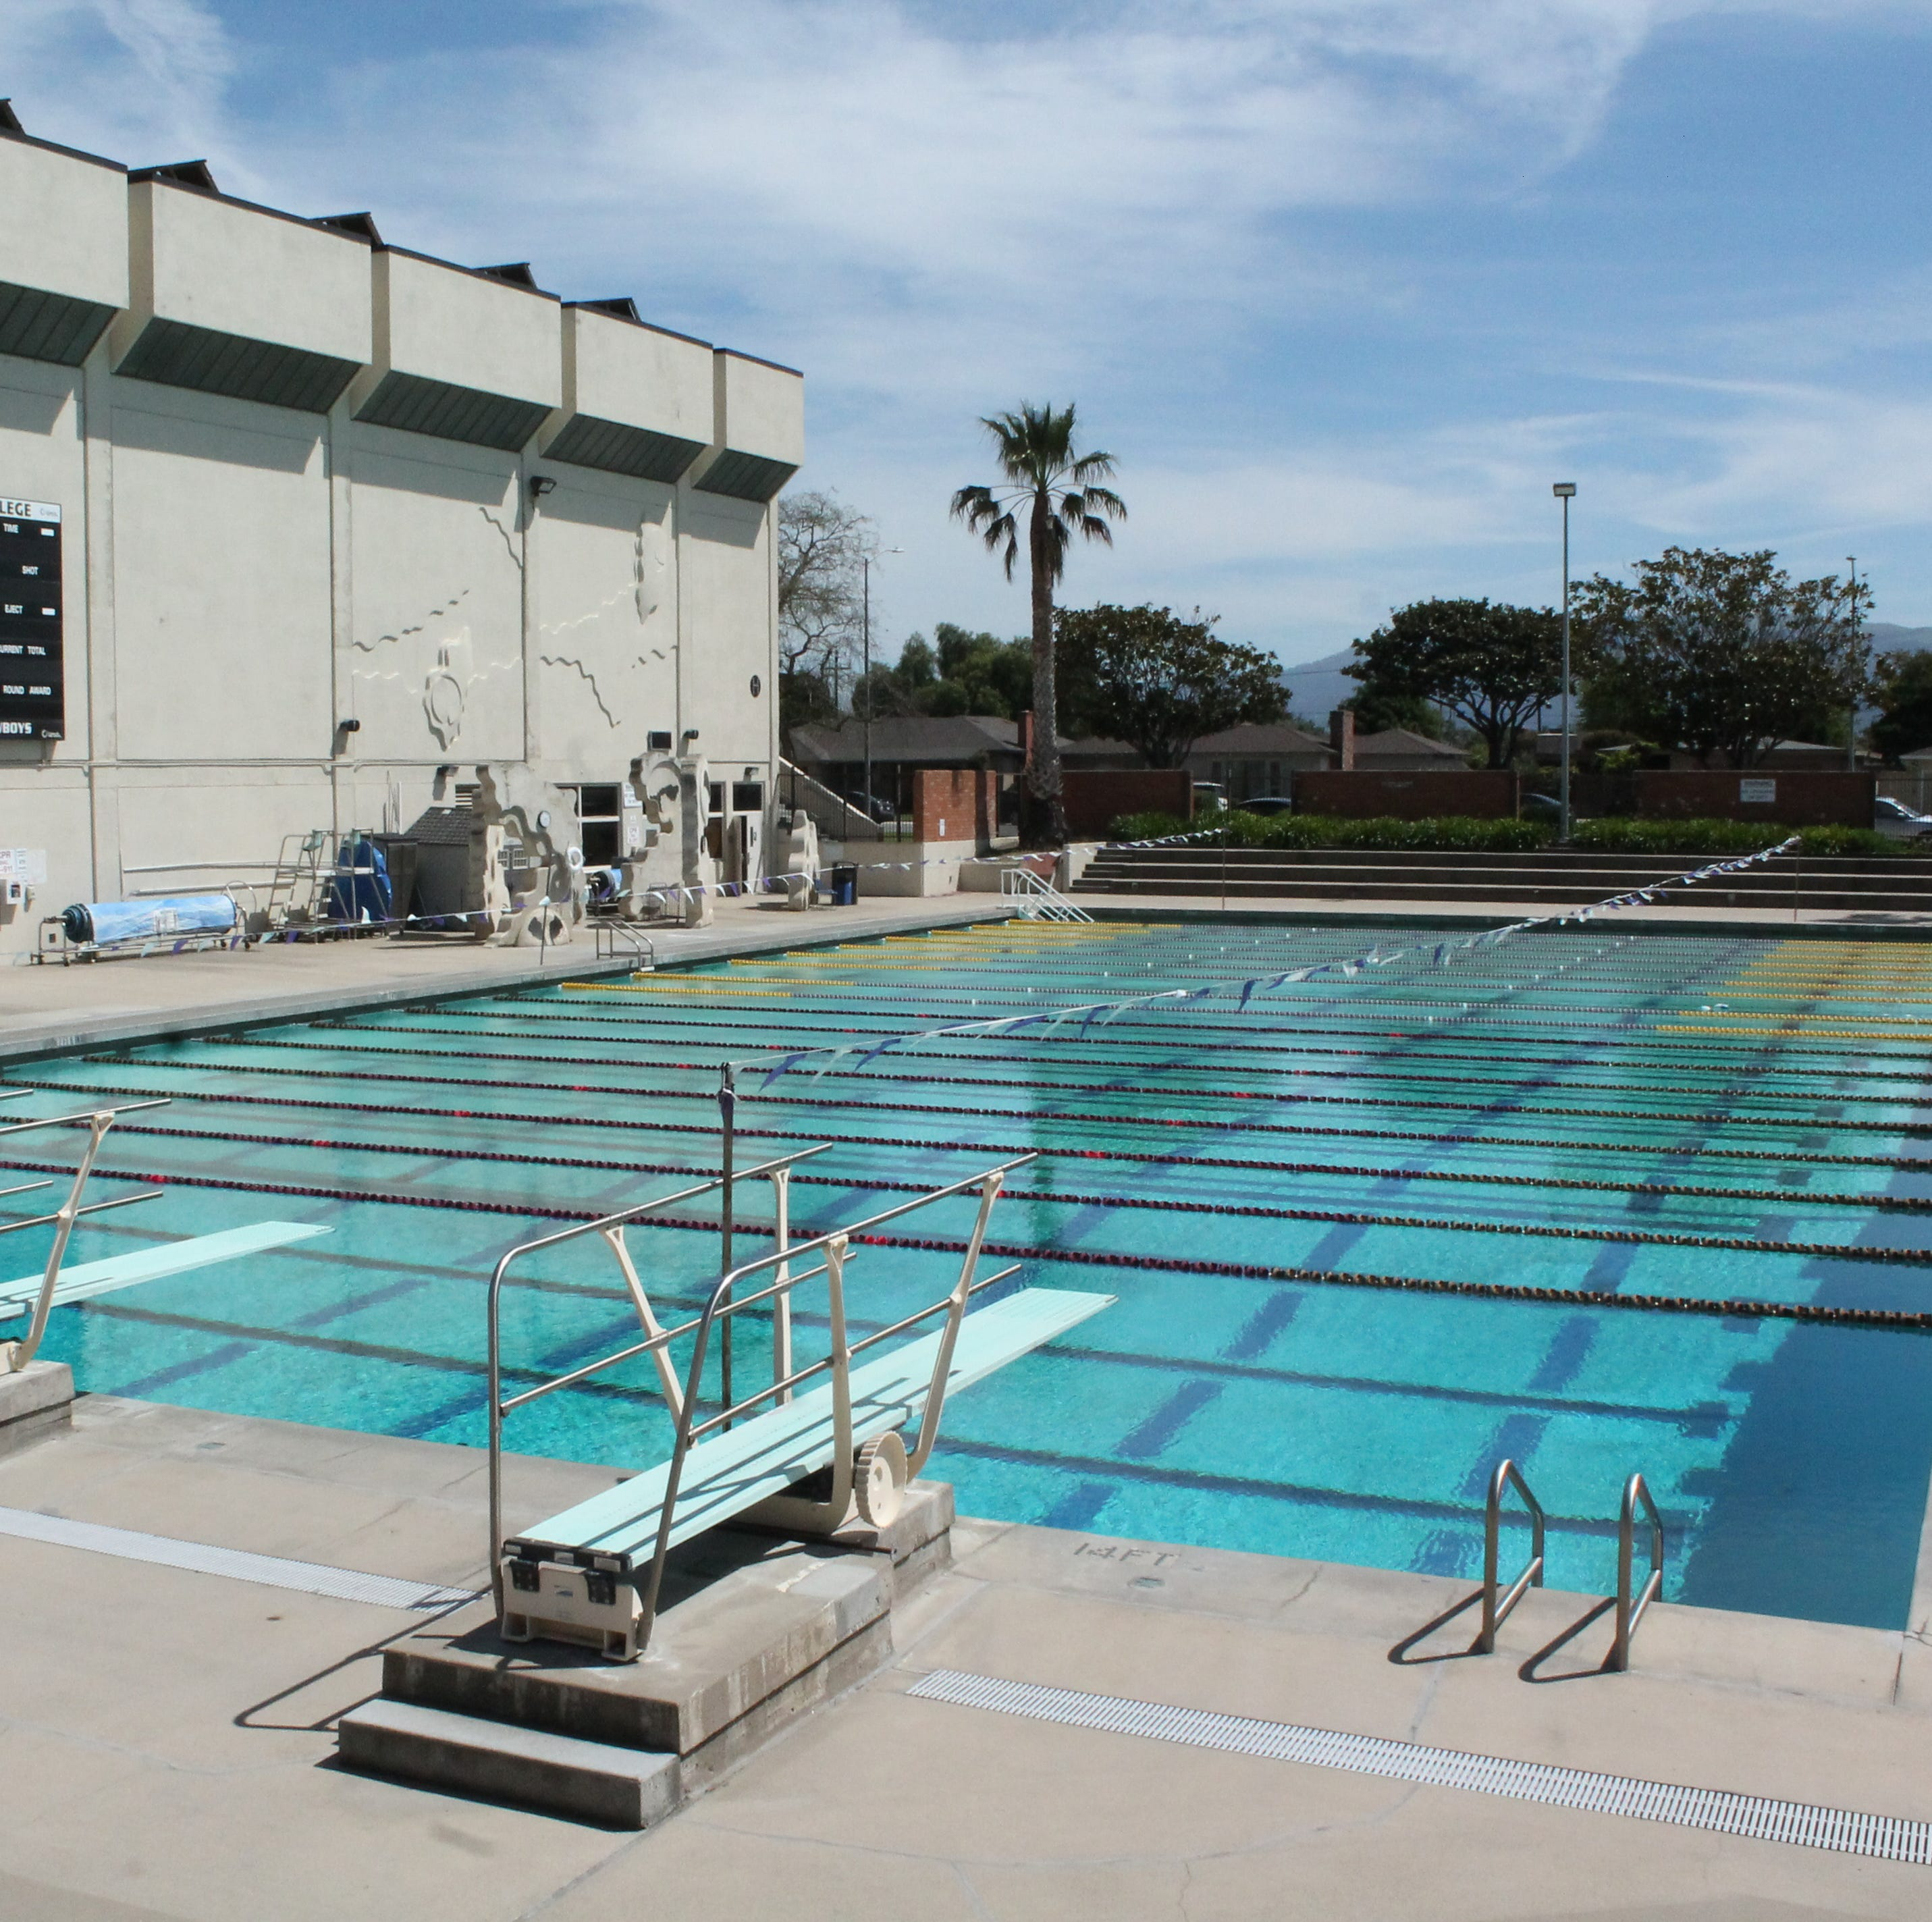 BREAKING: Hartnell College to re-instate men's and women's swimming, diving